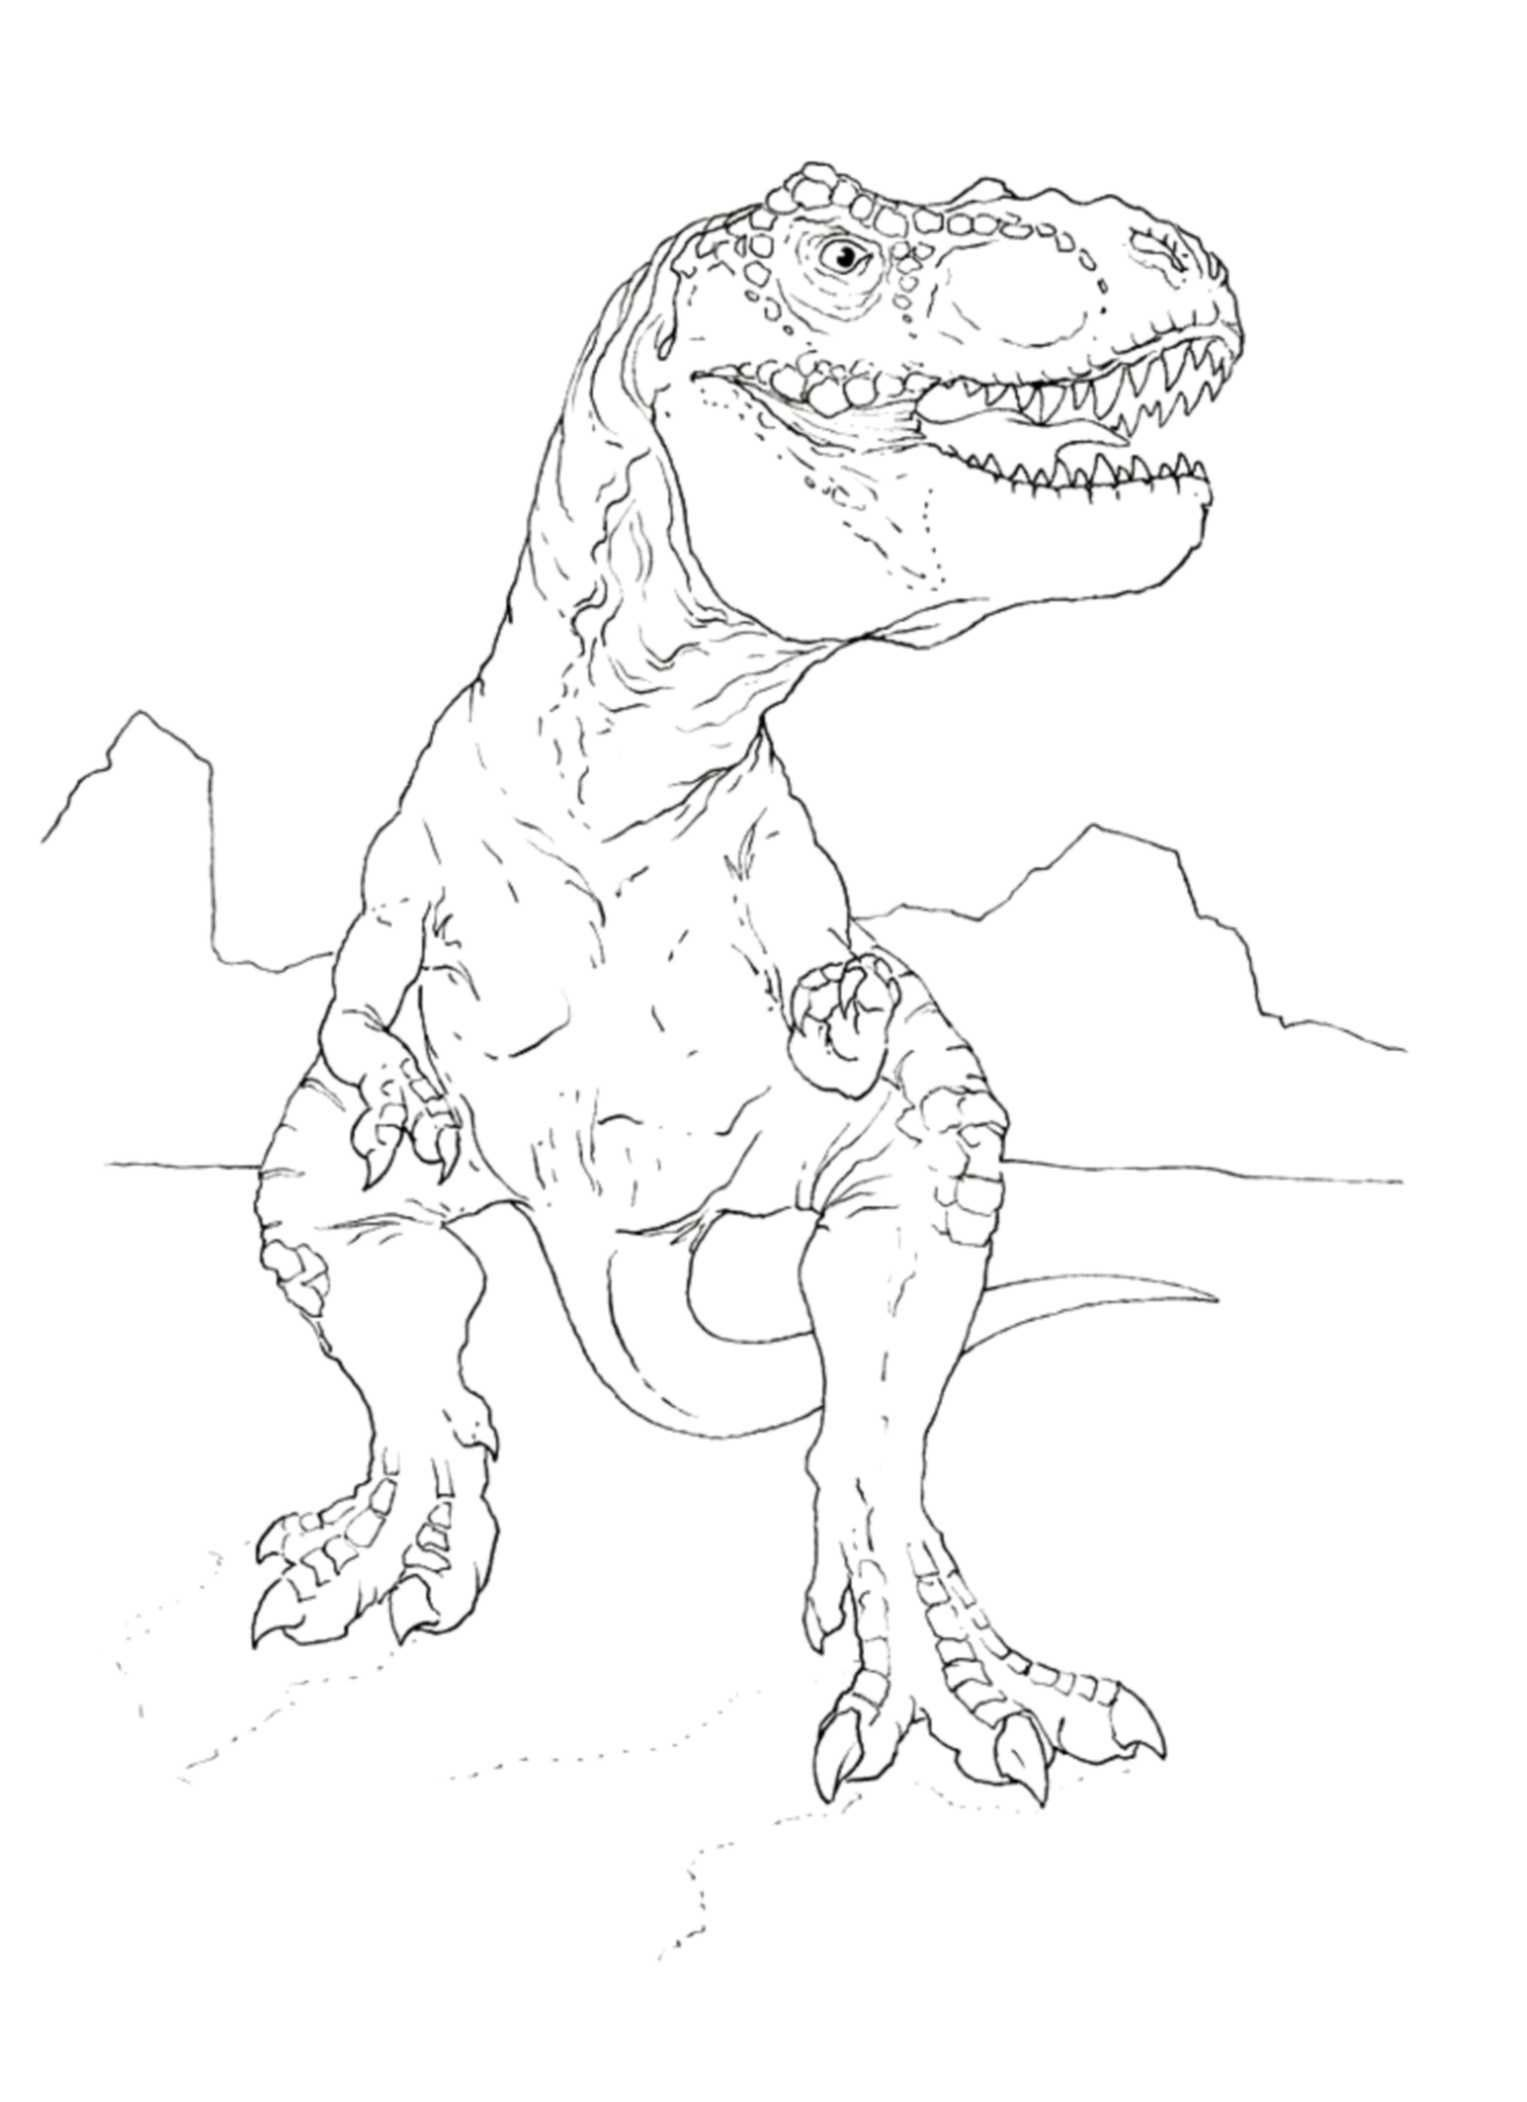 Jurassic Park Coloring Pages Fresh Dinosaur T Rex Coloring Pages Dinosaur Coloring Pages Animal Coloring Pages Dinosaur Coloring